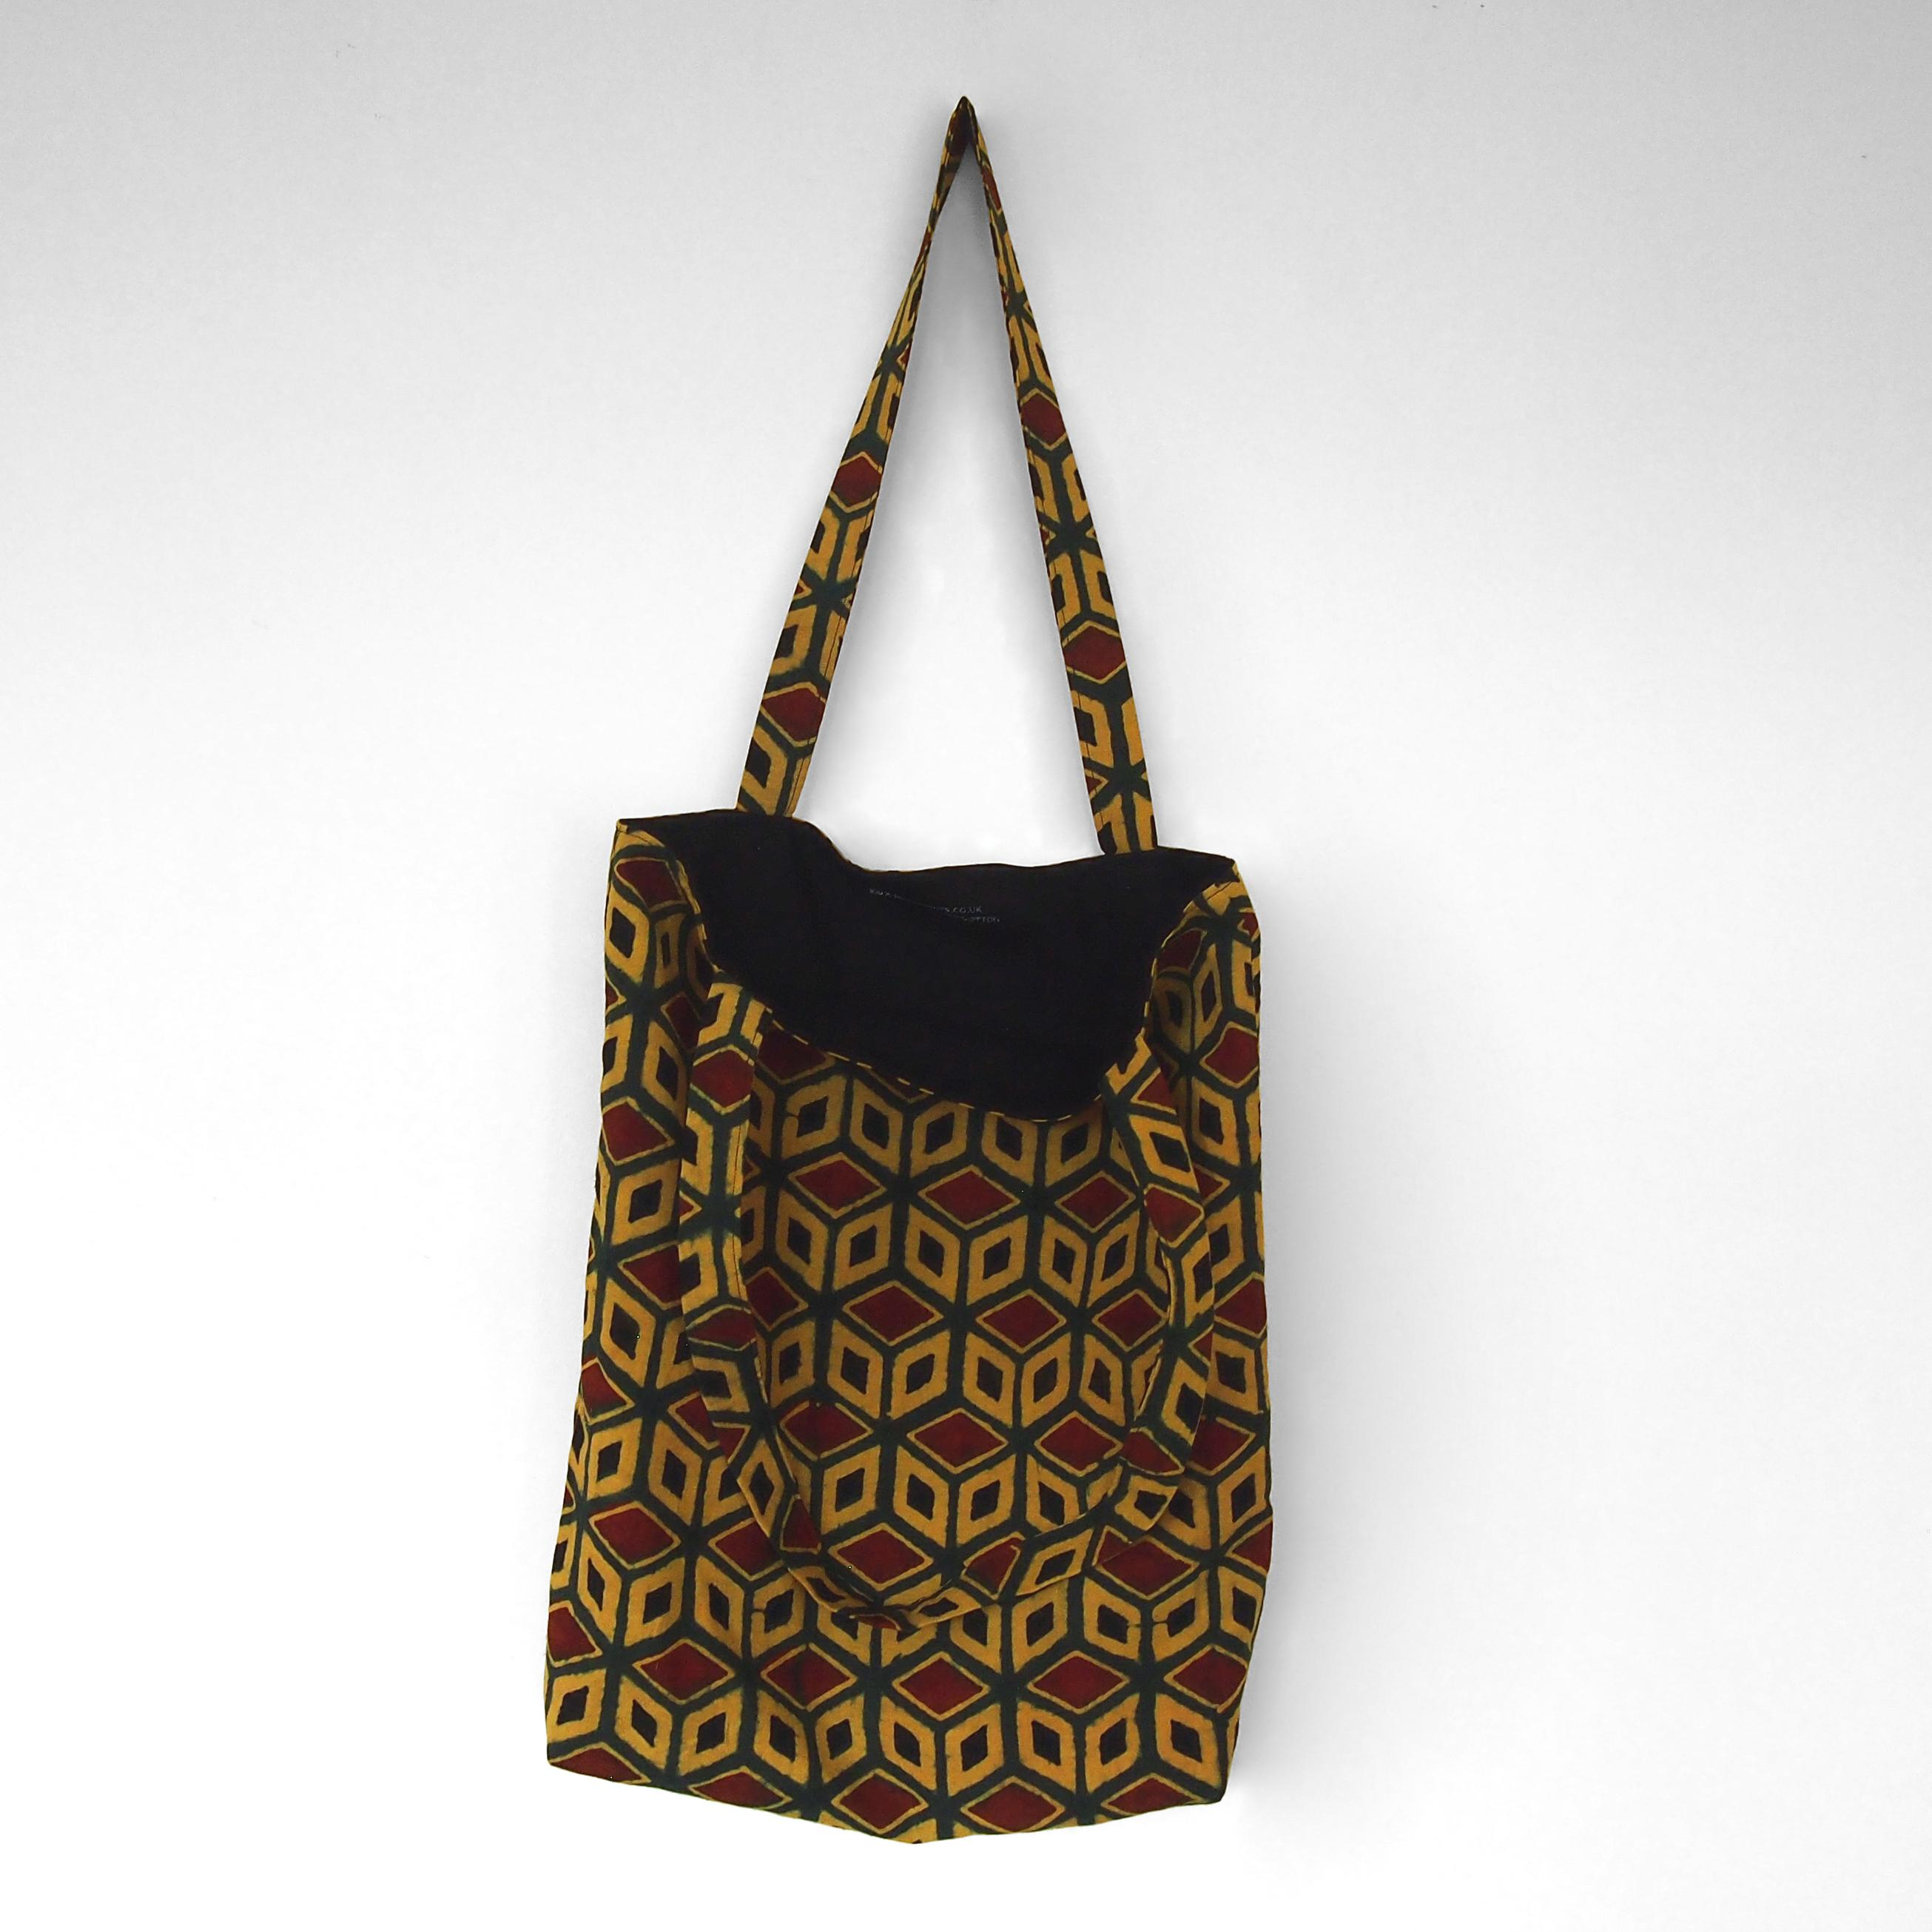 block printed cotton tote bag, yellow, green red black tumbling block design, natural dye, lined with black cotton, open